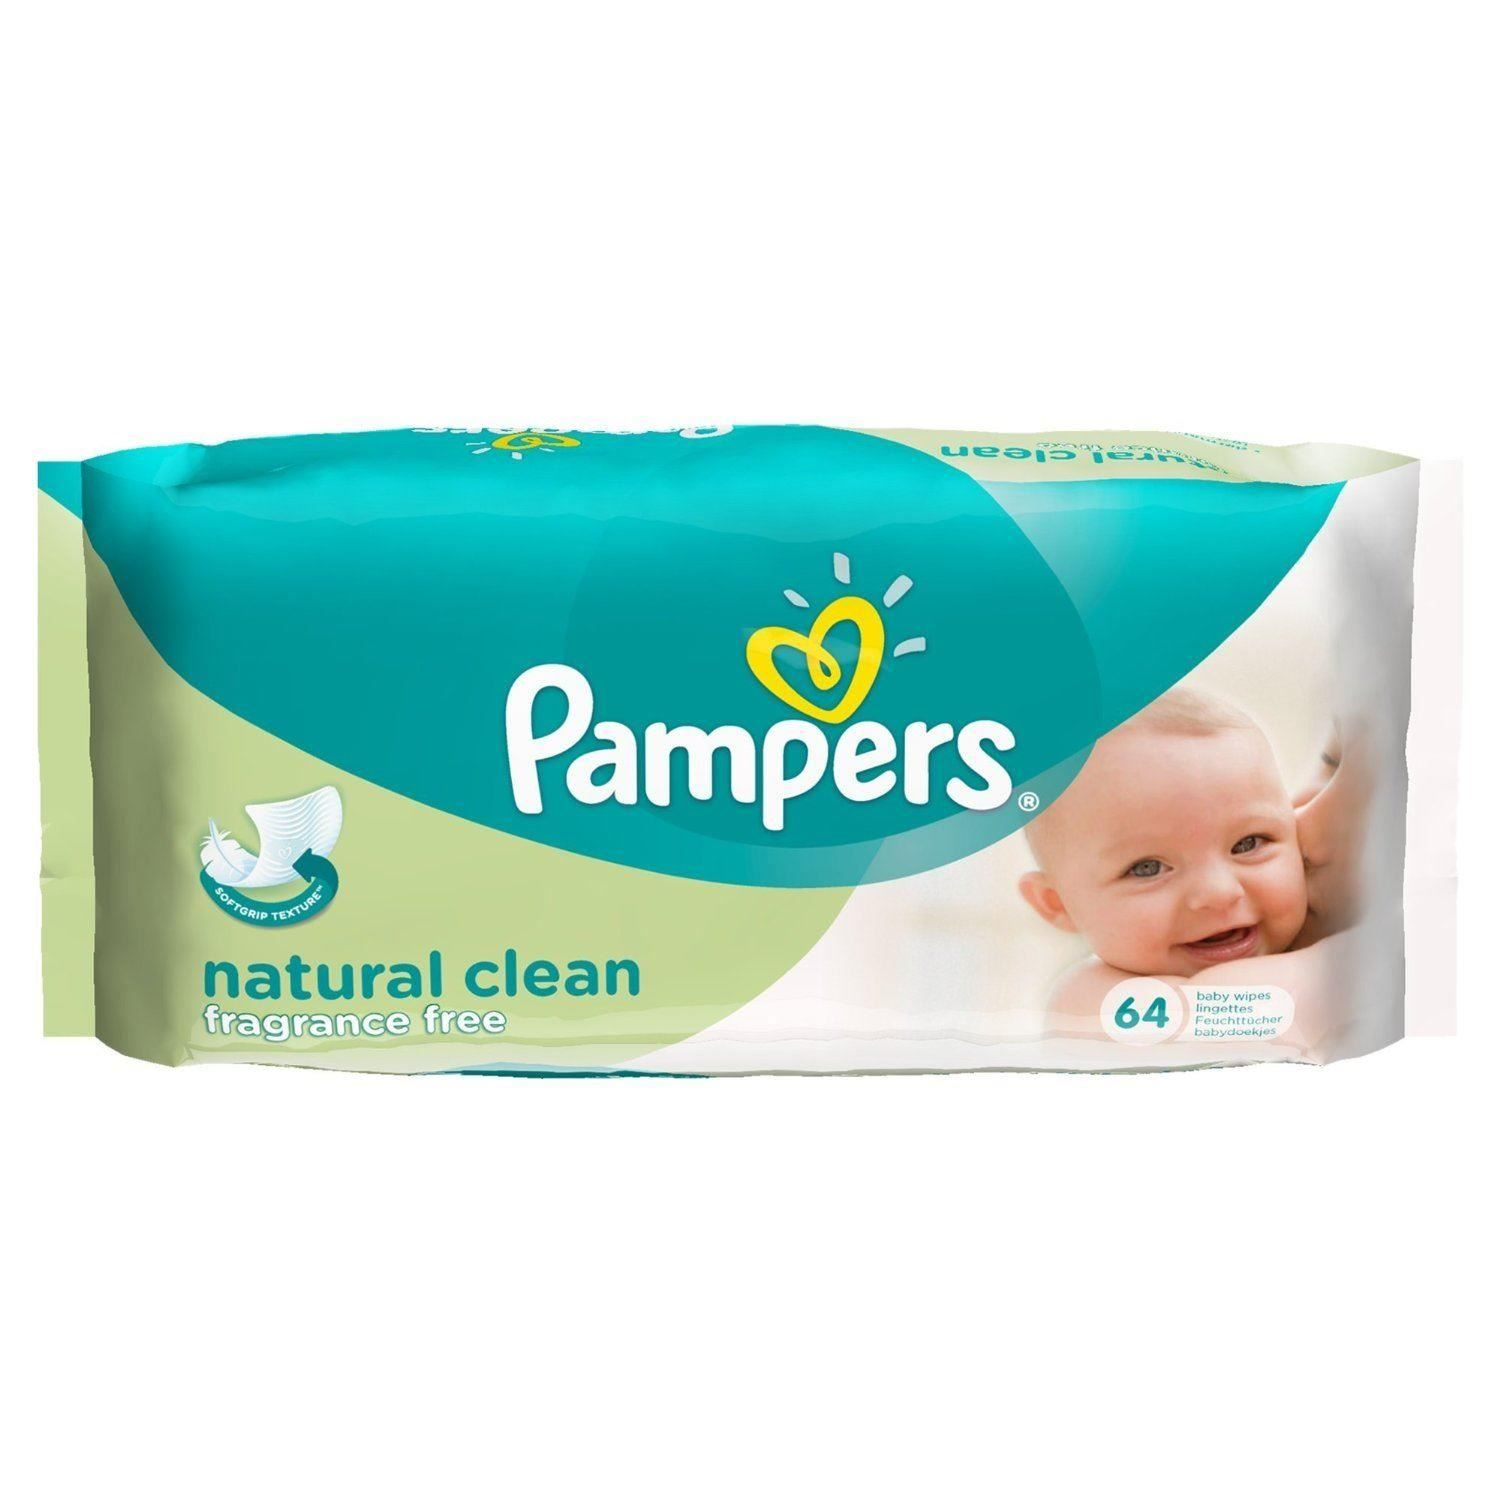 Wrap your baby in Pampers Swaddlers diapers, our most trusted comfort and protection and the #1 Choice of Hospitals (based on sales of the newborn hospital diapers). Our Blankie Soft diaper with a unique Absorb Away Liner pulls wetness and mess away from baby's skin to help keep your baby .